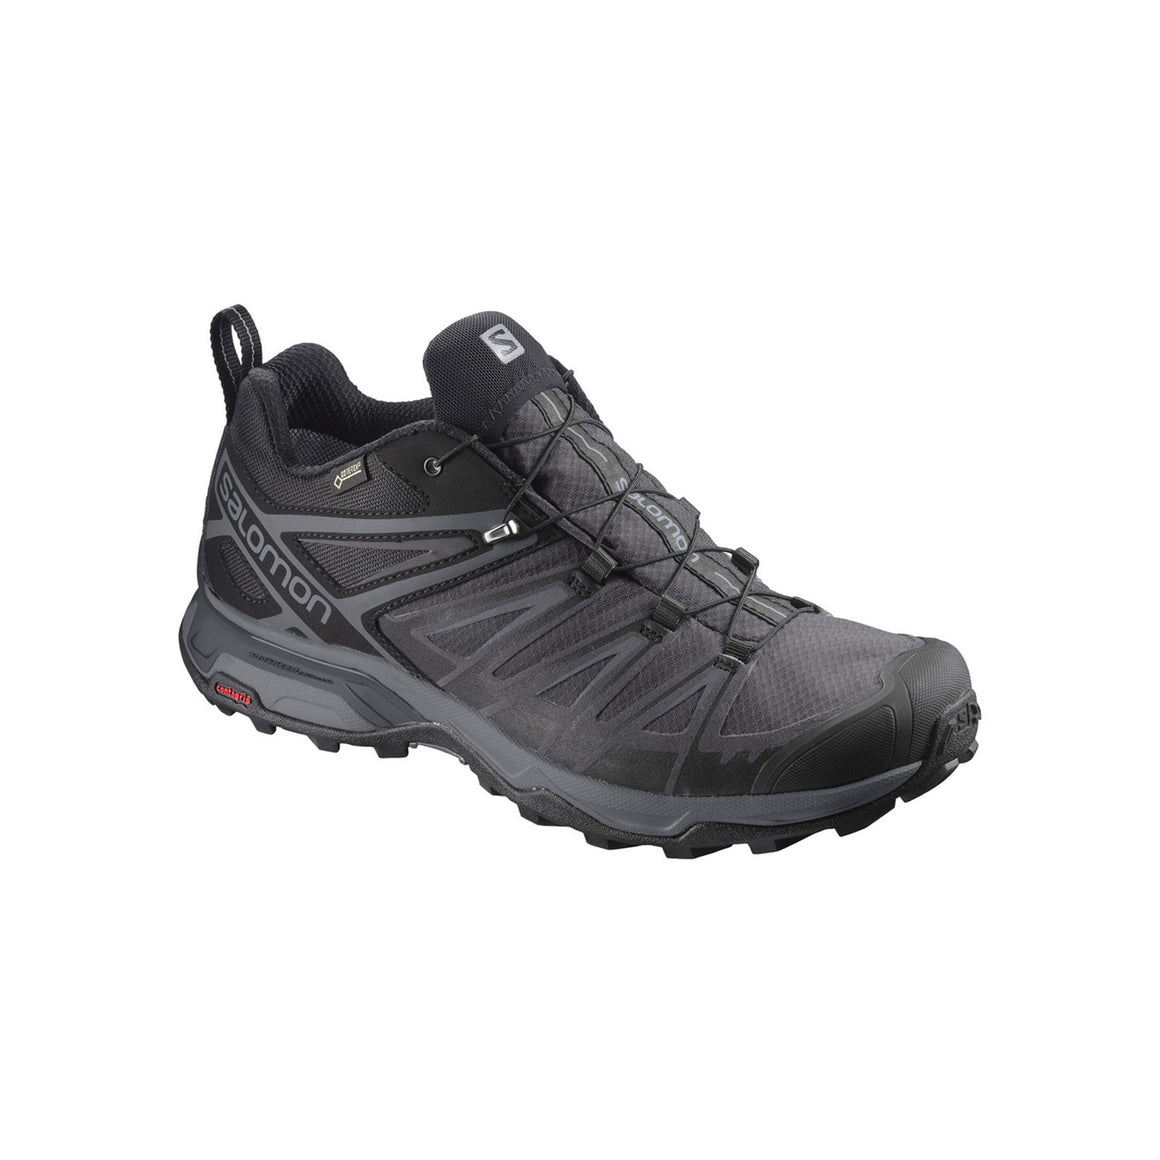 Salomon X Ultra 3 GTX - Men's